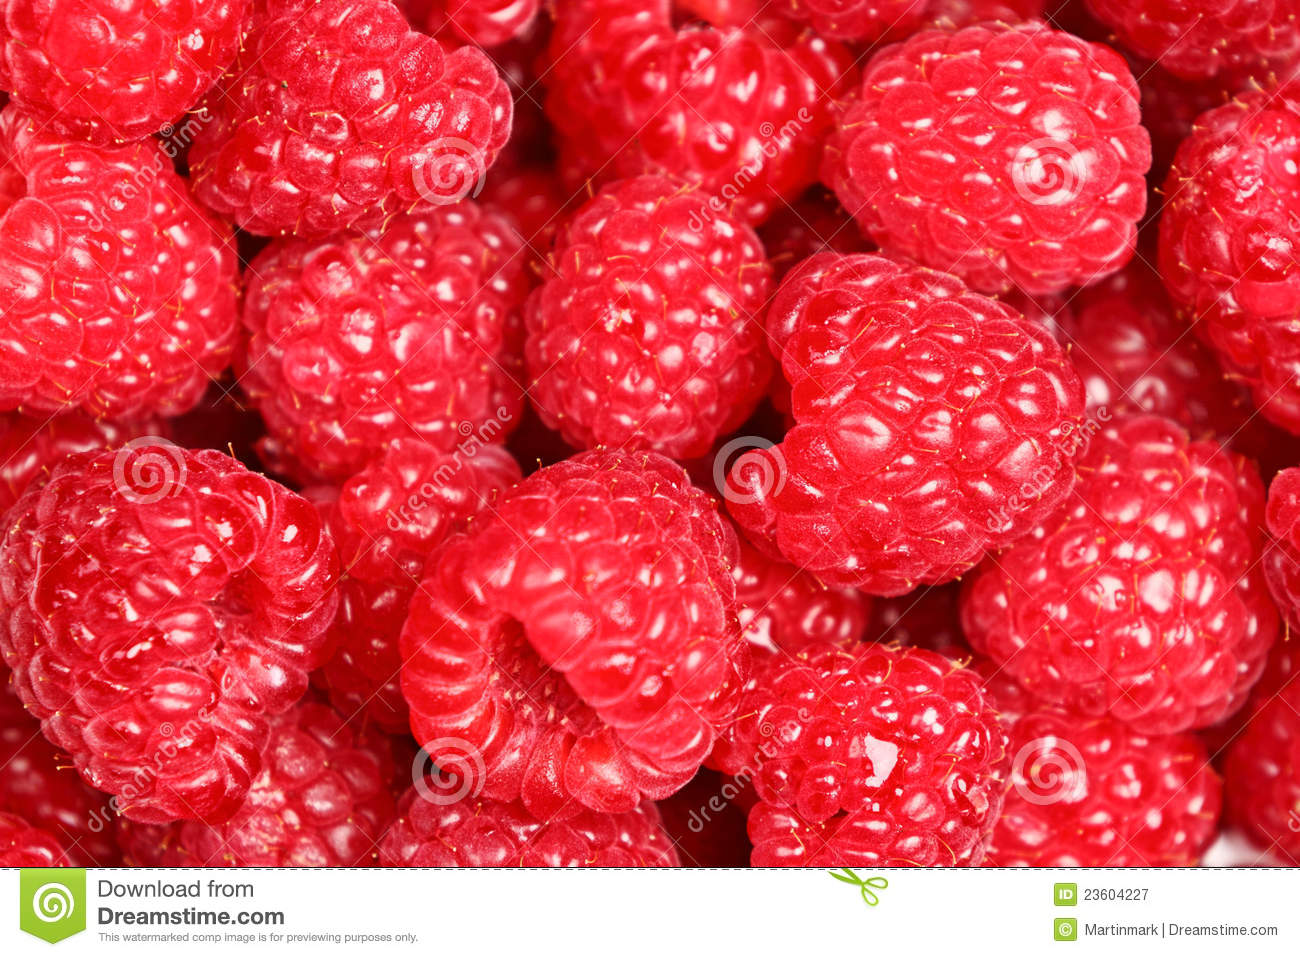 Raspberries - raspberry texture background